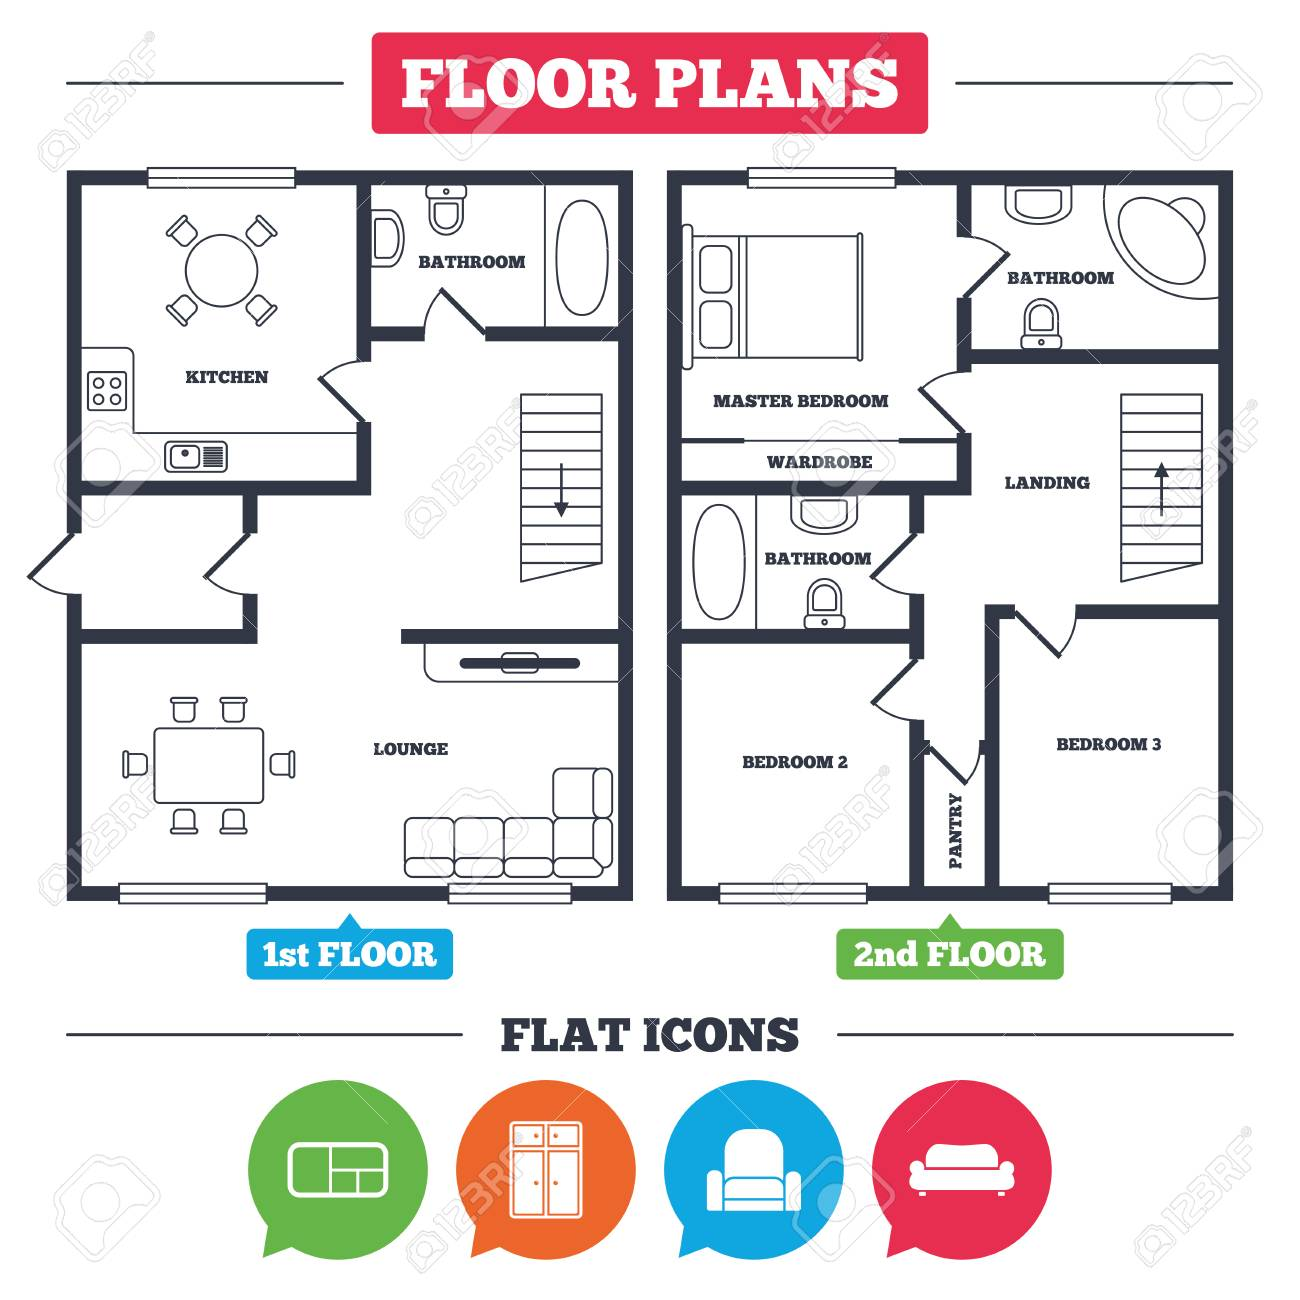 floor plan furniture symbols bedroom. Architecture Plan With Furniture. House Floor Plan. Furniture Icons. Sofa, Cupboard, Symbols Bedroom R